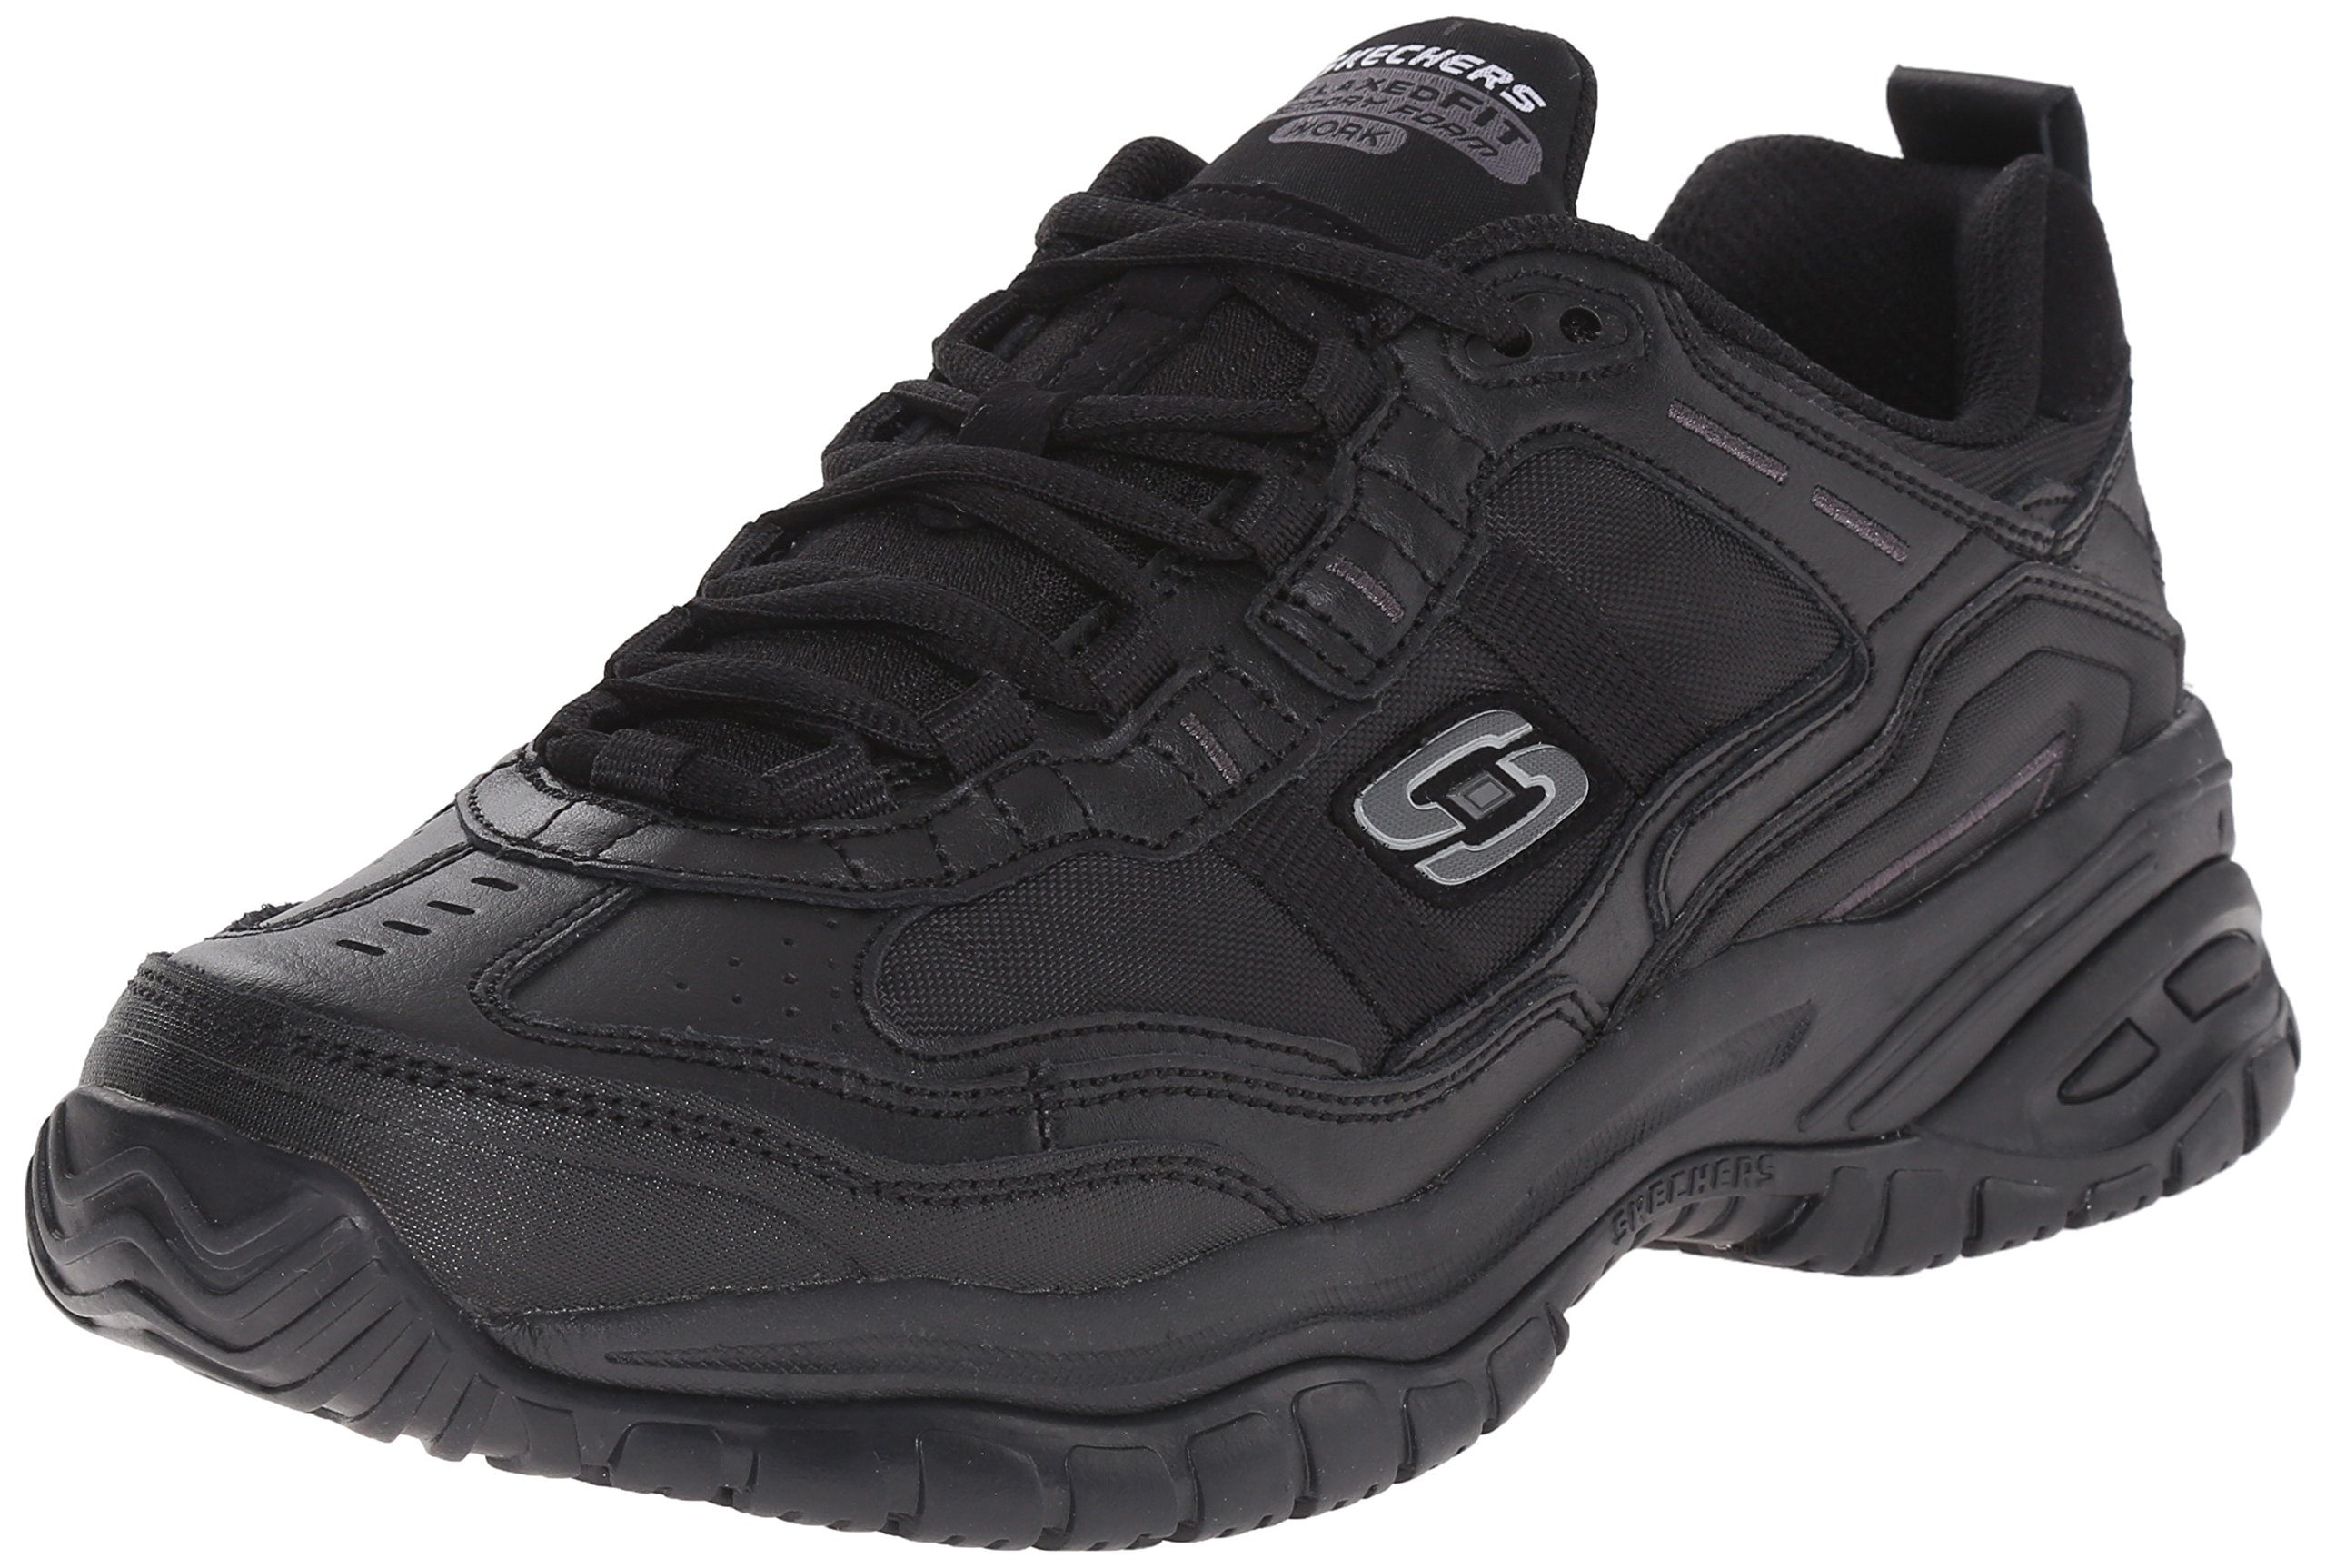 Skechers for Work Men's Soft Stride Mavin Work Shoe, Black, 7.5 W US by Skechers